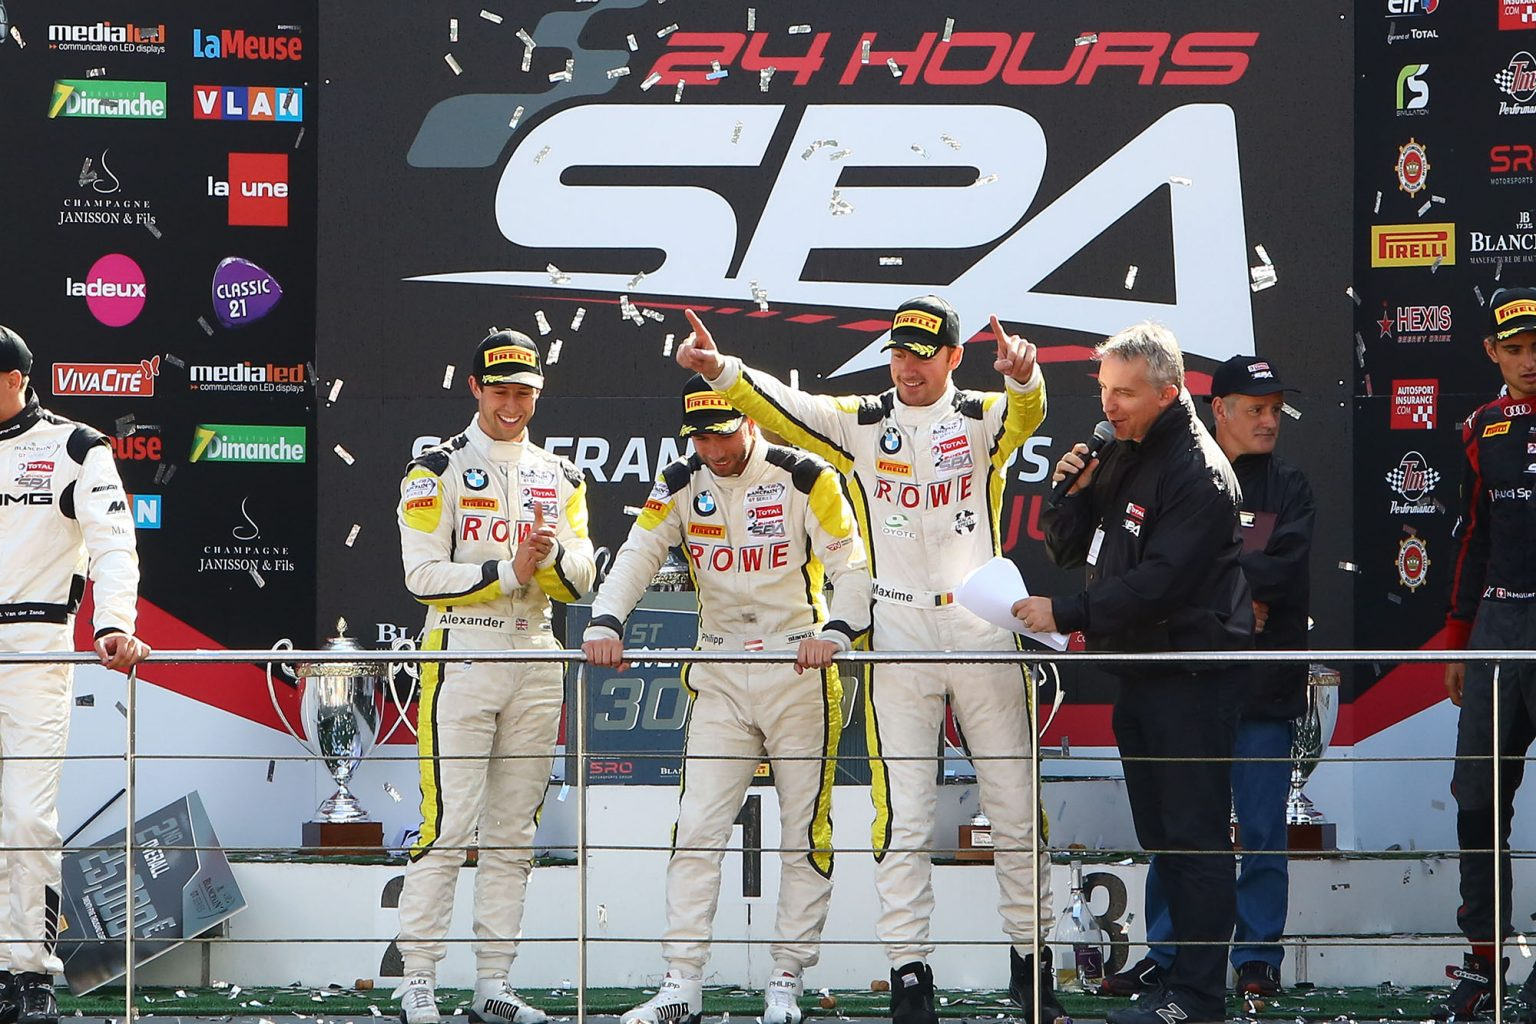 28.07.2016 to 31.07.2016, 2016 Blancpain GT Series Endurance Cup, Total 24 Hours of Spa, Spa Francorchamps, Spa (BEL). Podium, Alexander Sims (GBR), Phillipp Eng (AUT), Maxime Martin (BEL), No 99, Rowe Racing, BMW M6 GT3